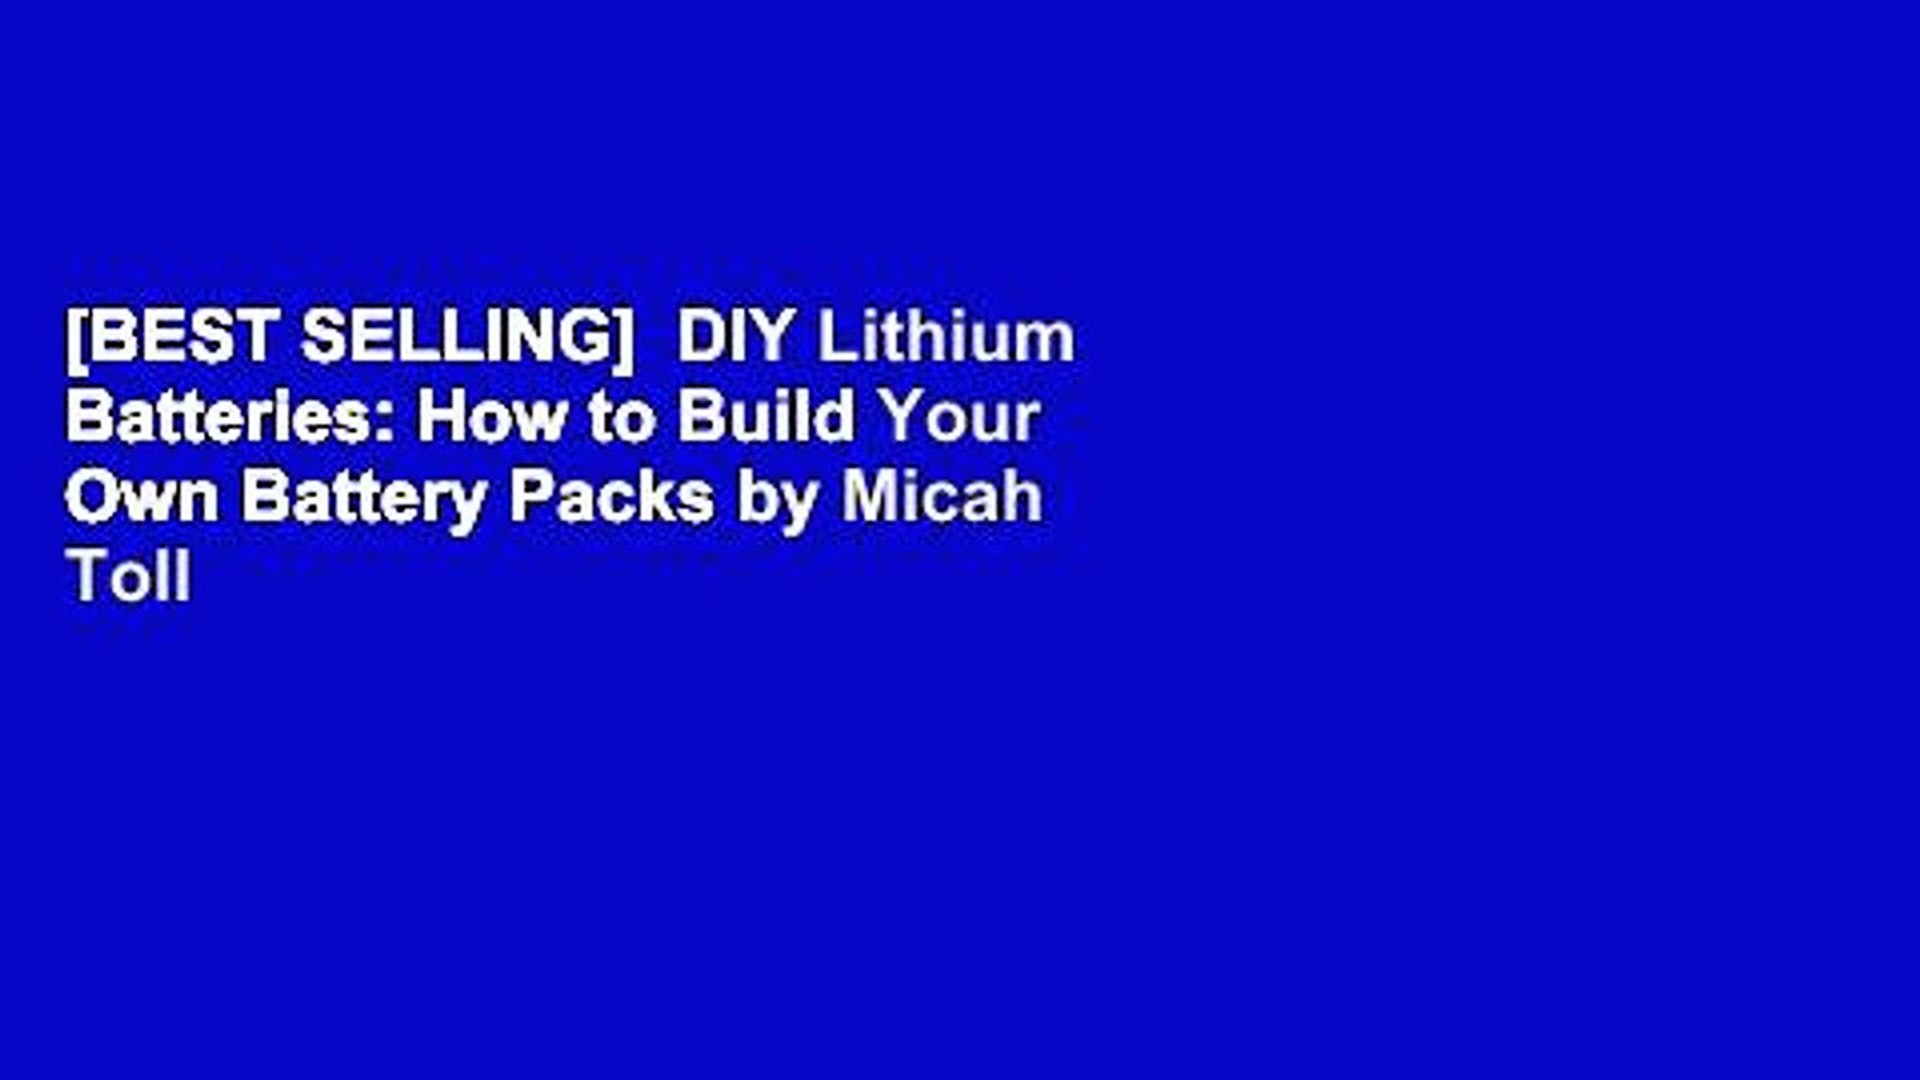 [BEST SELLING]  DIY Lithium Batteries: How to Build Your Own Battery Packs by Micah Toll